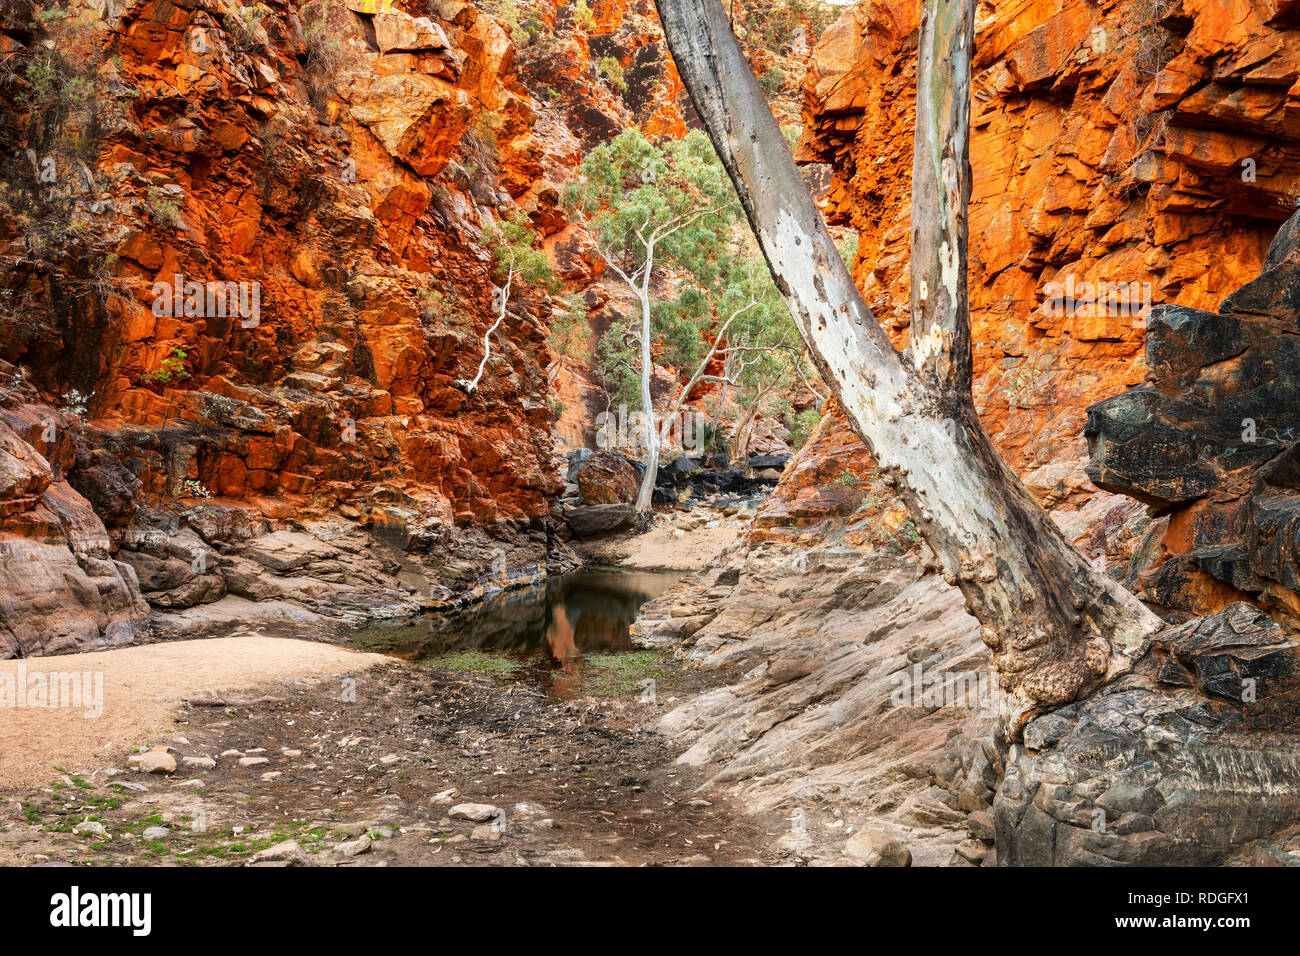 Picturesque Serpentine Gorge in MacDonnell Ranges. - Stock Image